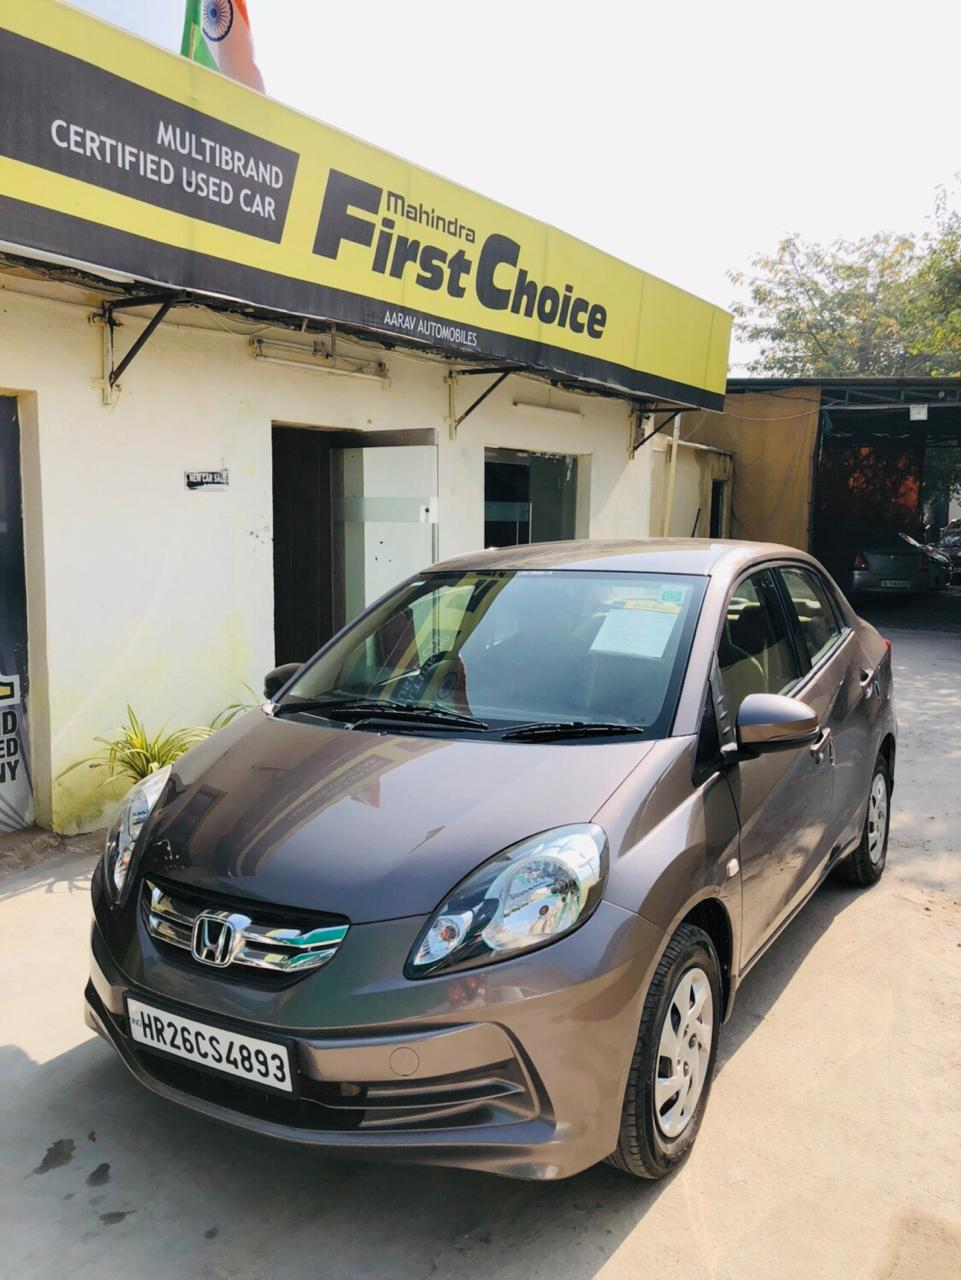 Used Cars In Gurgaon - Second Hand Cars For Sale - Used Cars - MFCWL